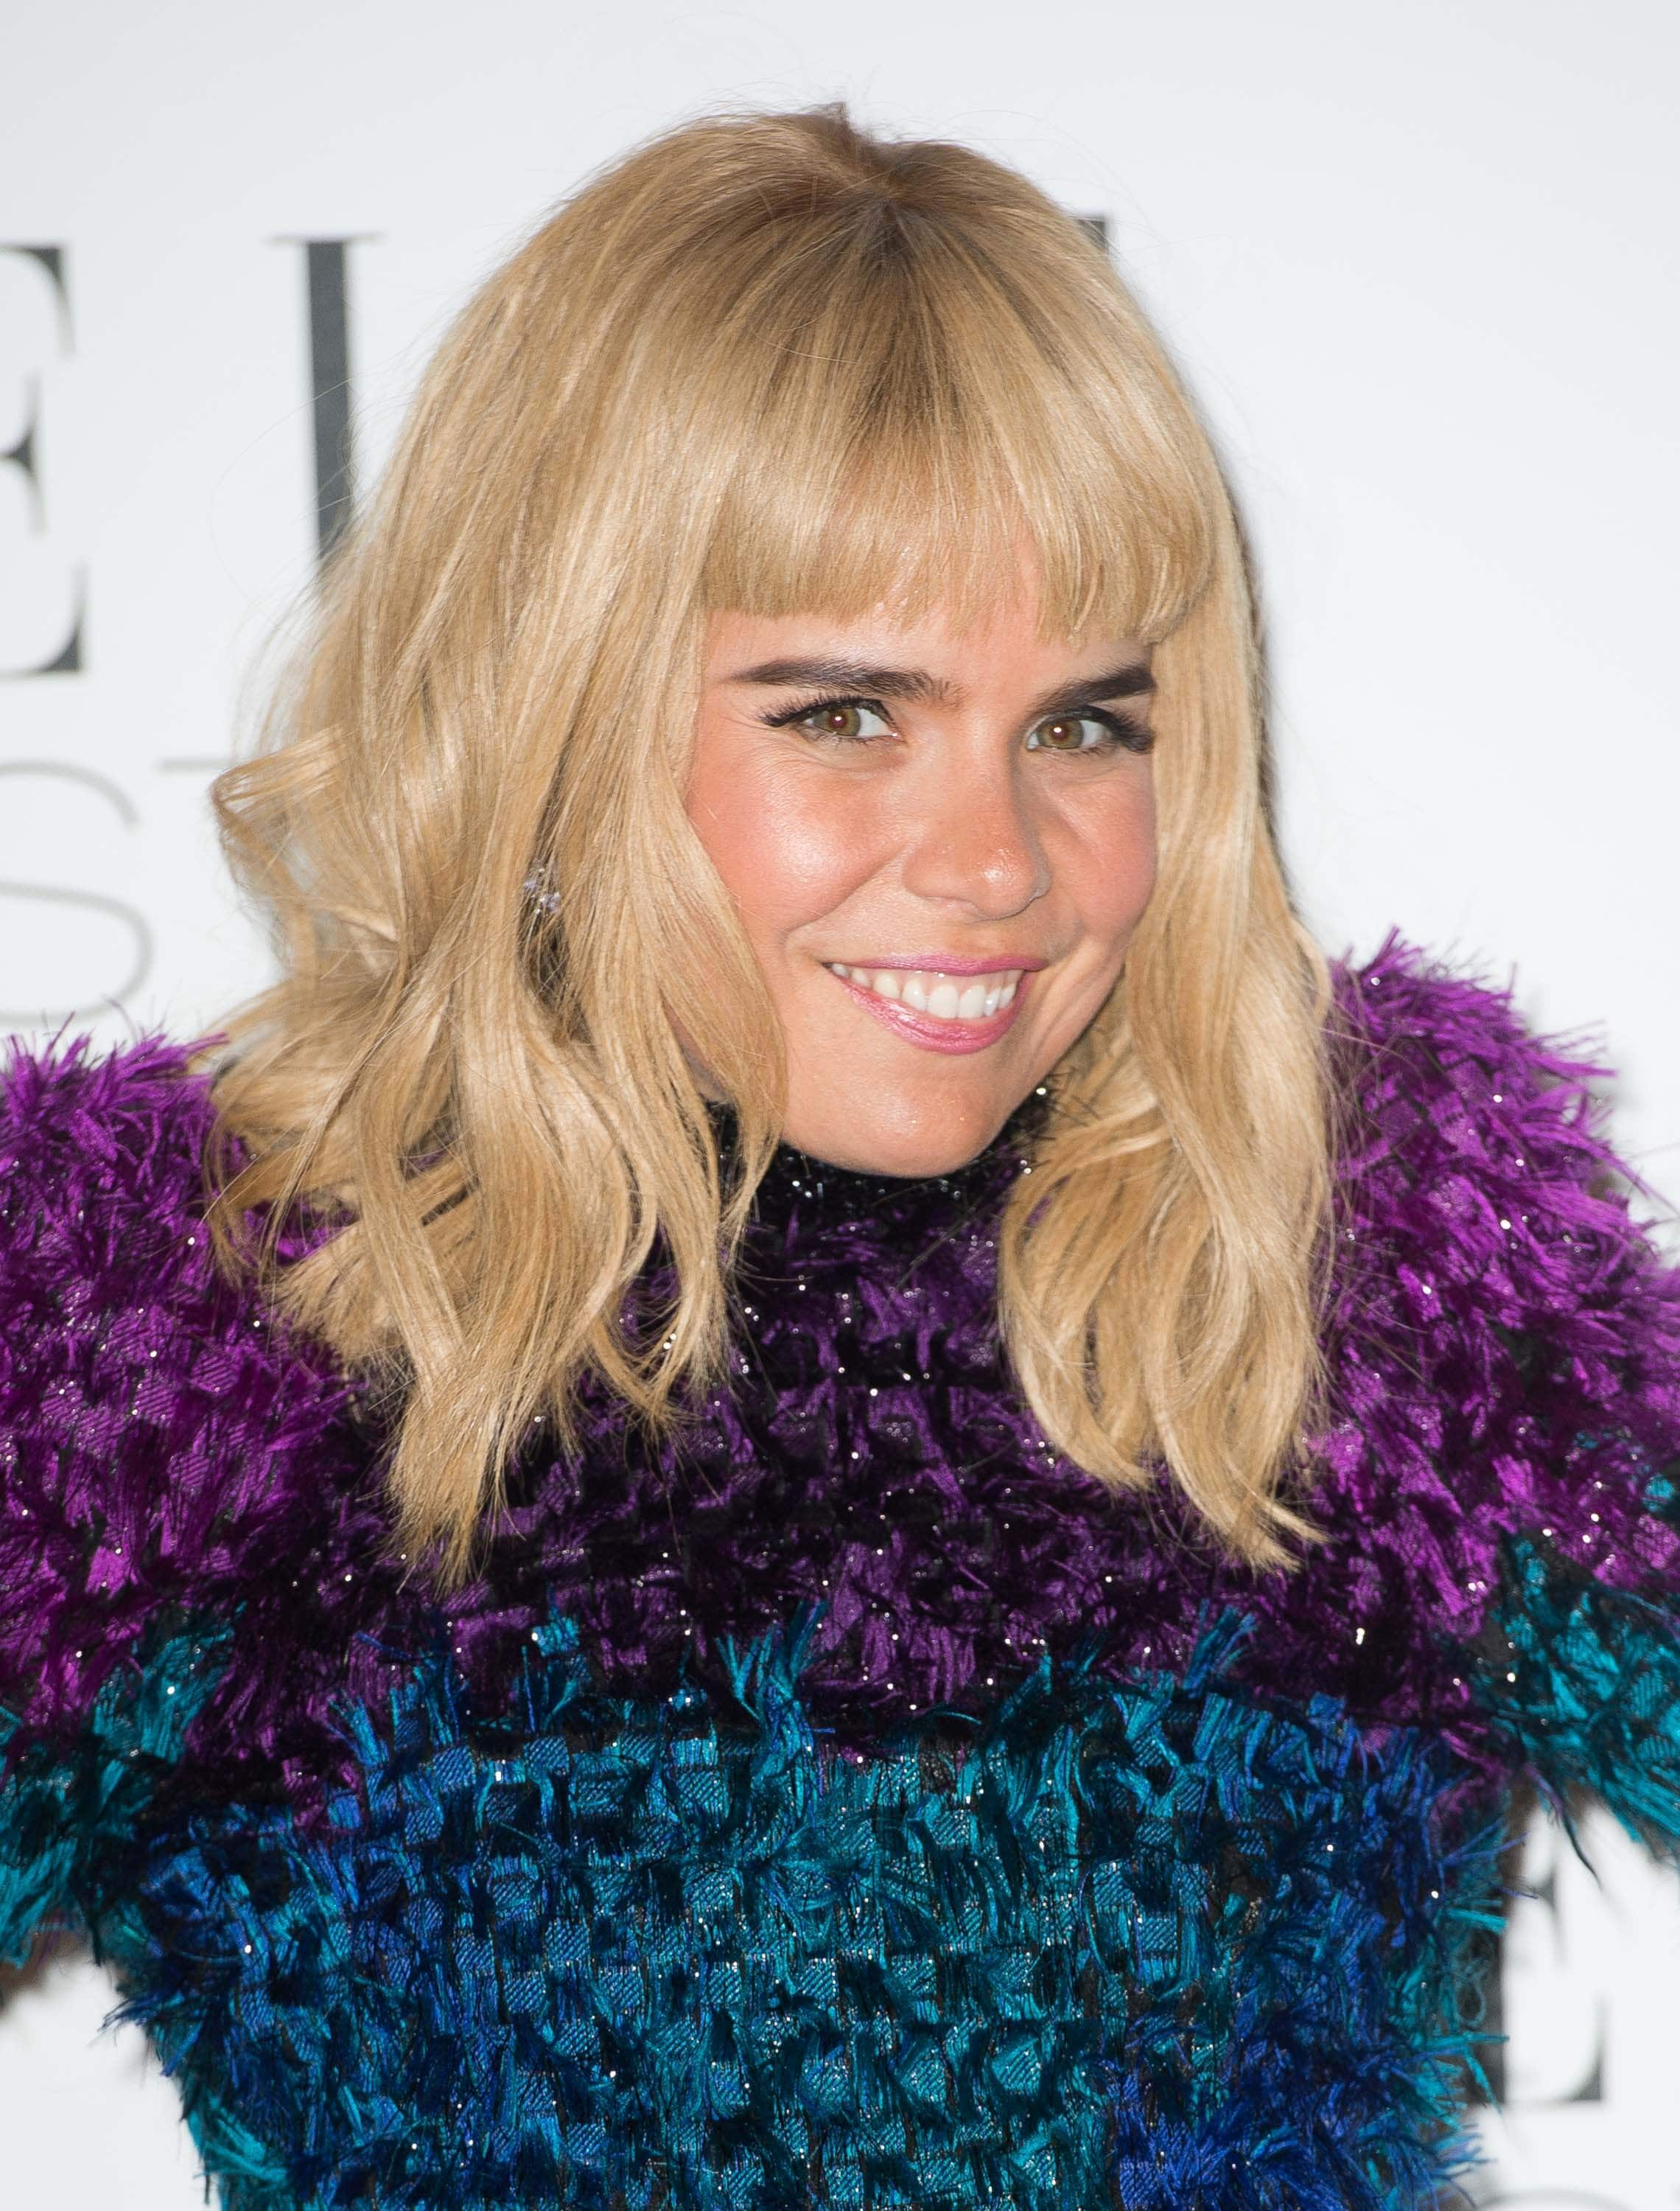 close up shot of paloma faith with messy blonde hair and feathery blunt bangs, wearing blue and purple dress on the red carpet